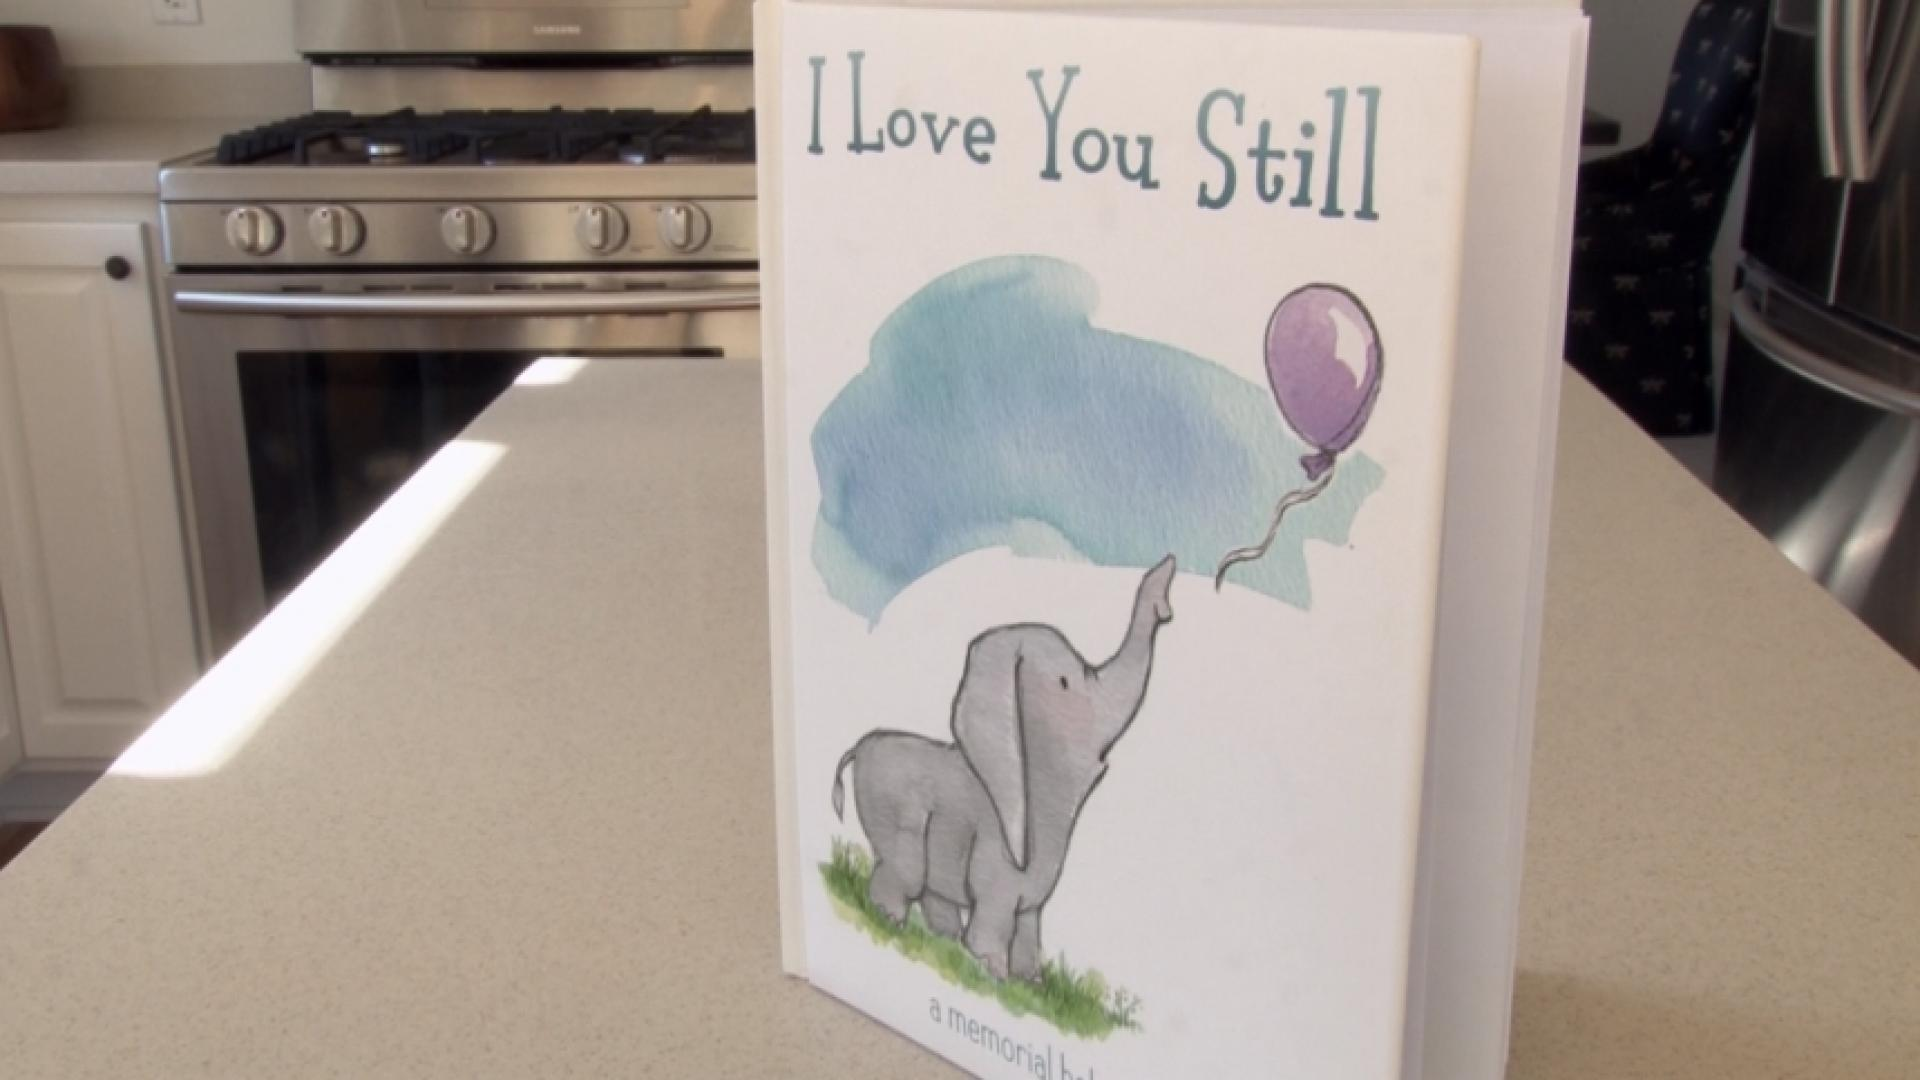 'I Love You Still' baby book offers comfort after miscarriage